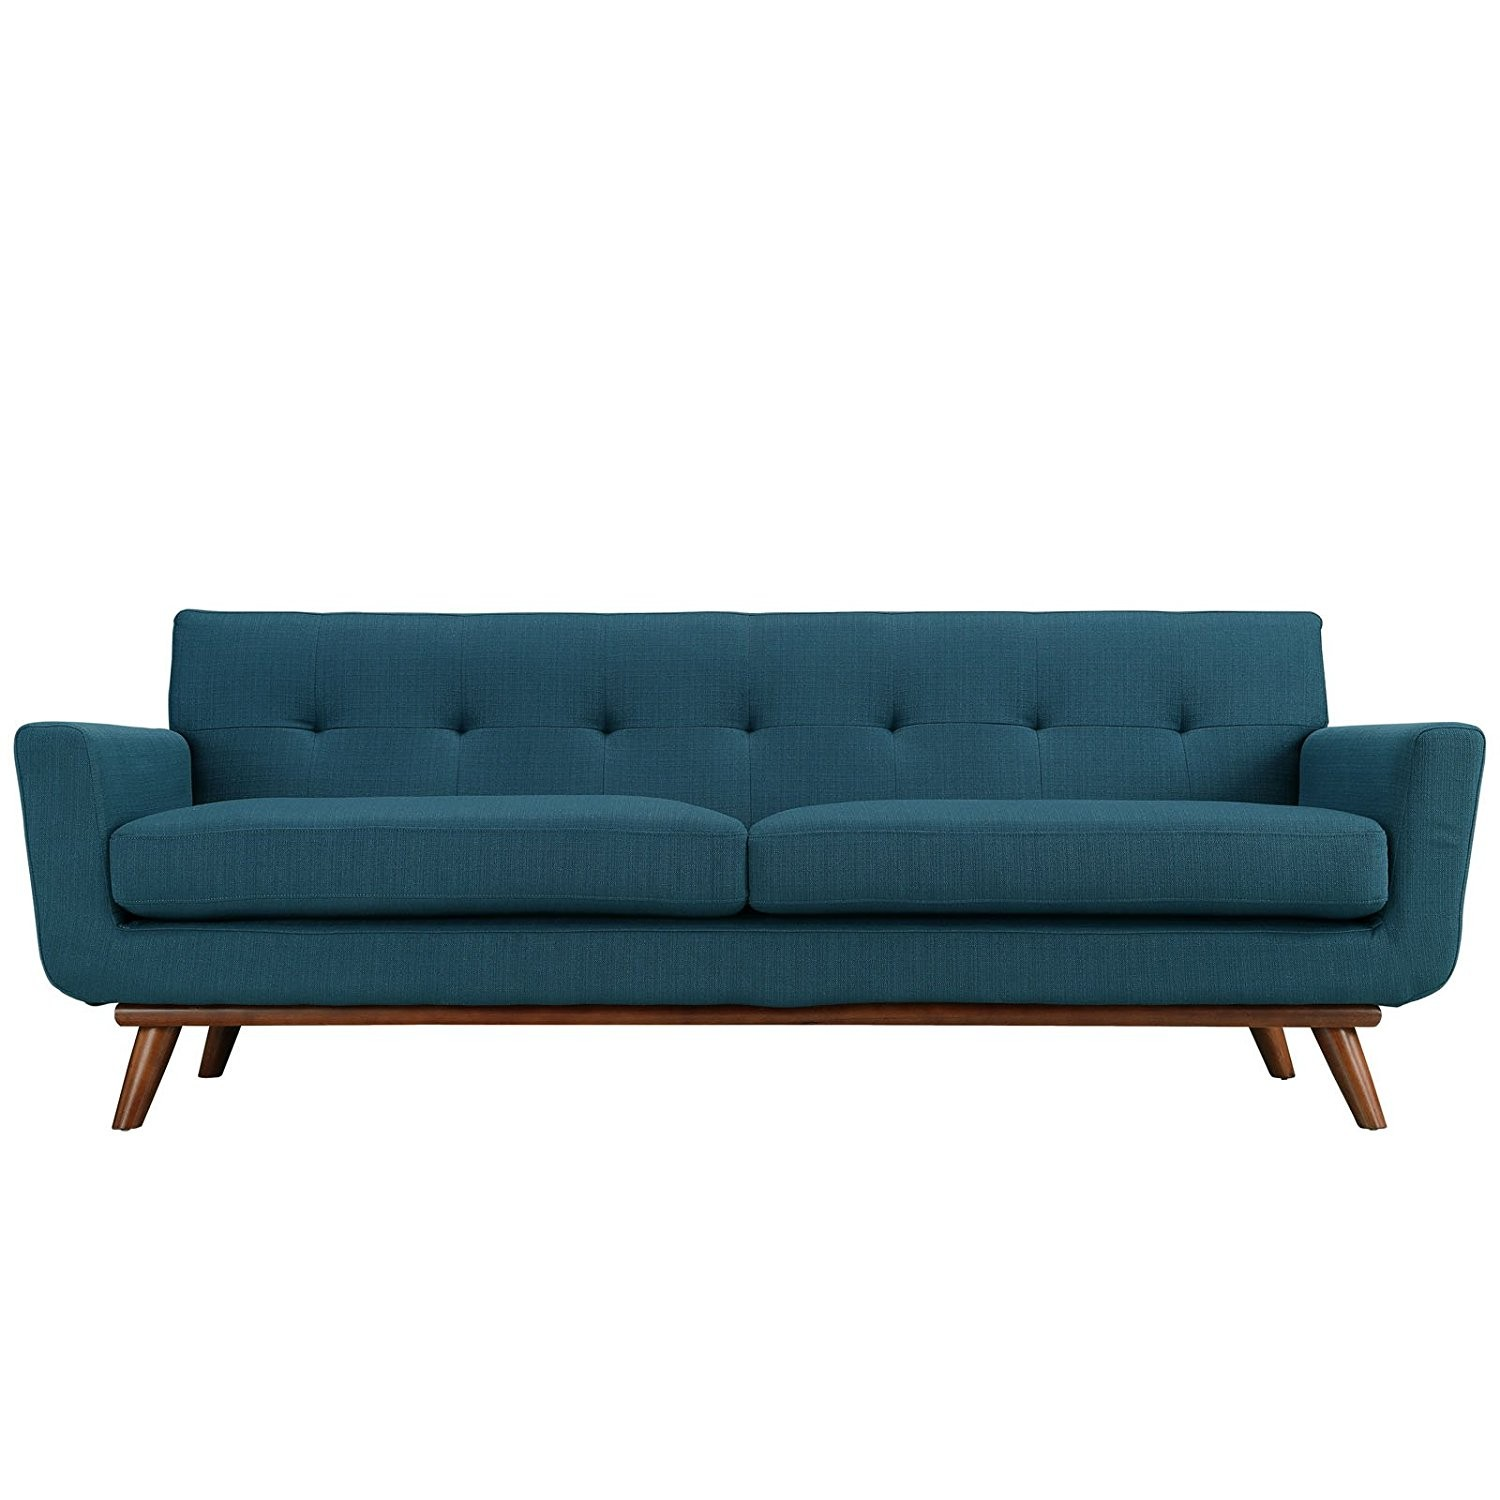 Mid Century sofas Contemporary Amazon Modway Engage Mid Century Modern Upholstered Fabric Ideas